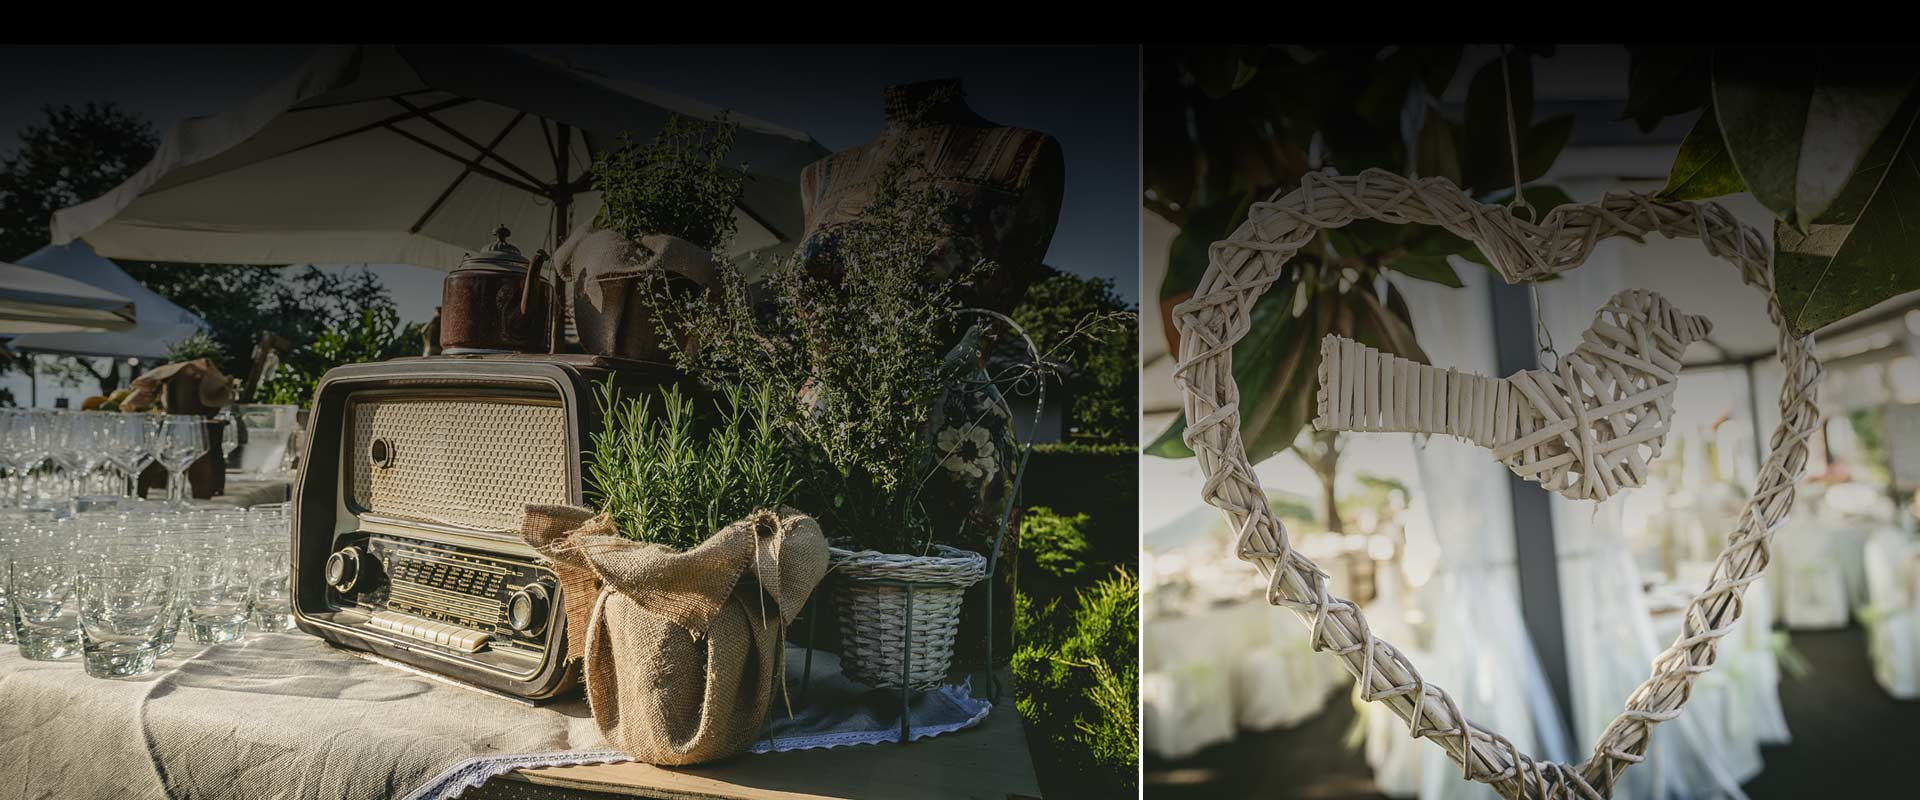 Matrimonio Country Chic Basilicata : Matrimonio country chic i giardini di ararat